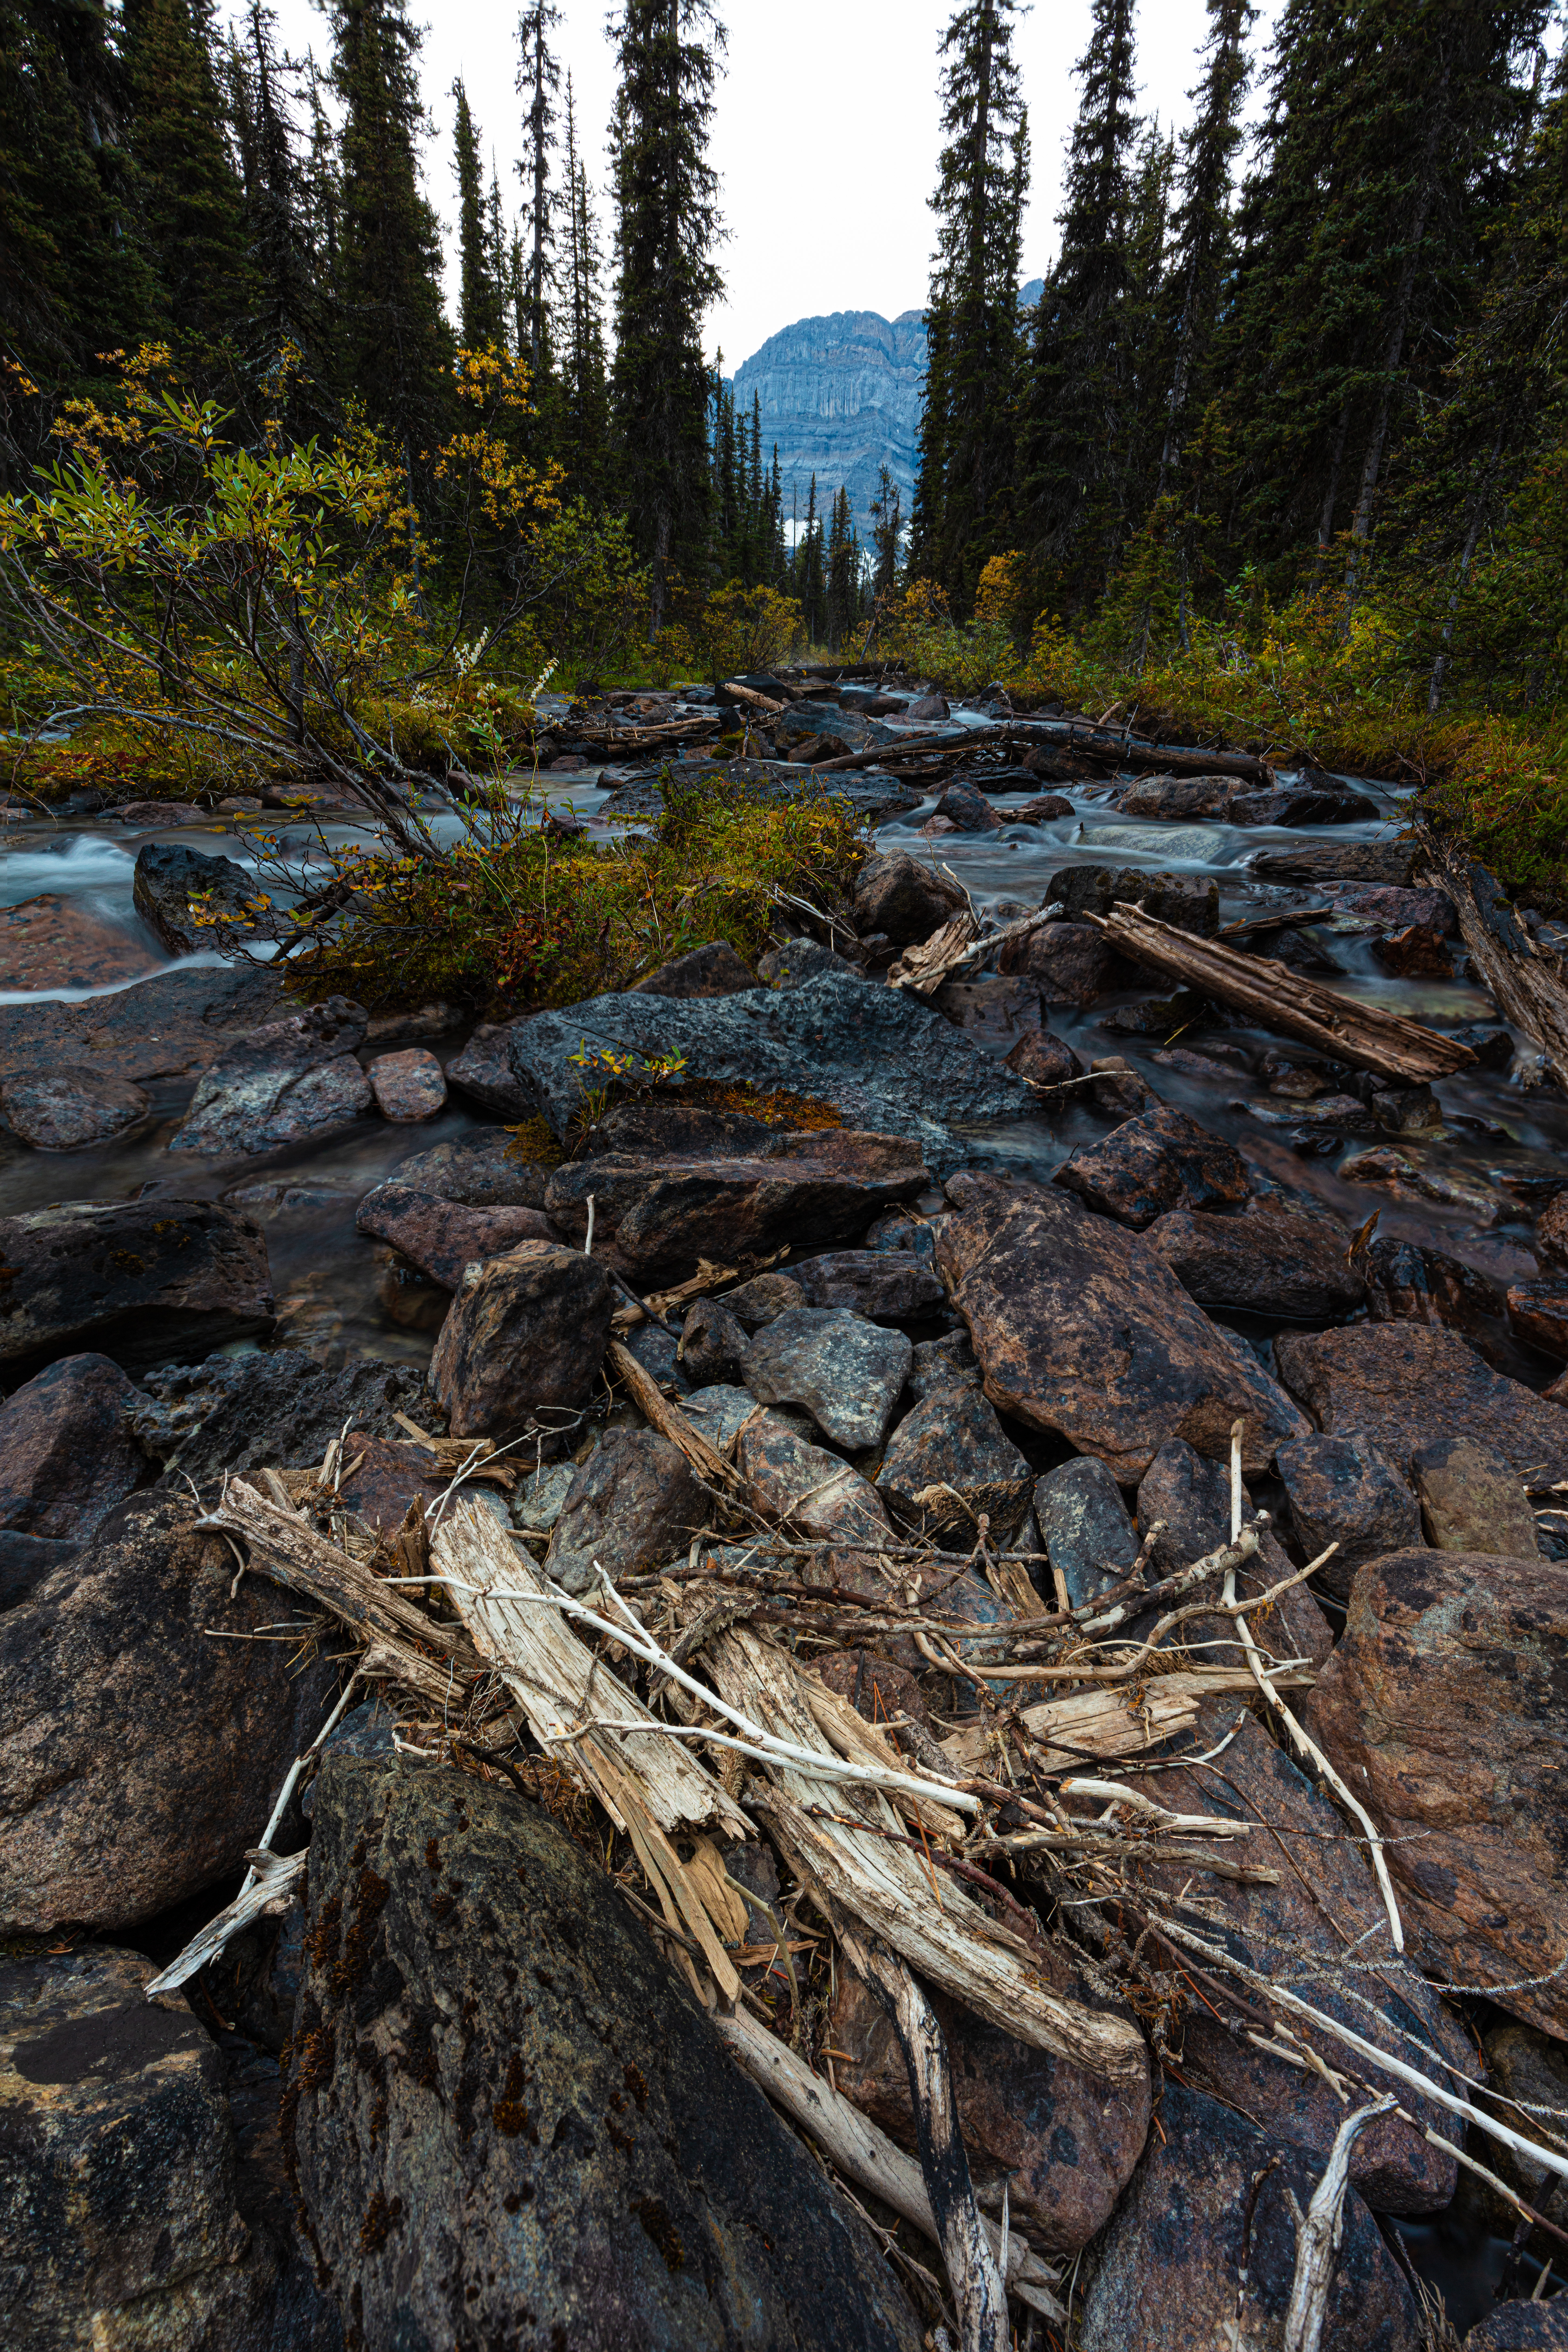 Deadwood caught up in some rocks in the stream leading up to Cirque Lake near Lake Louise in Alberta, Canada